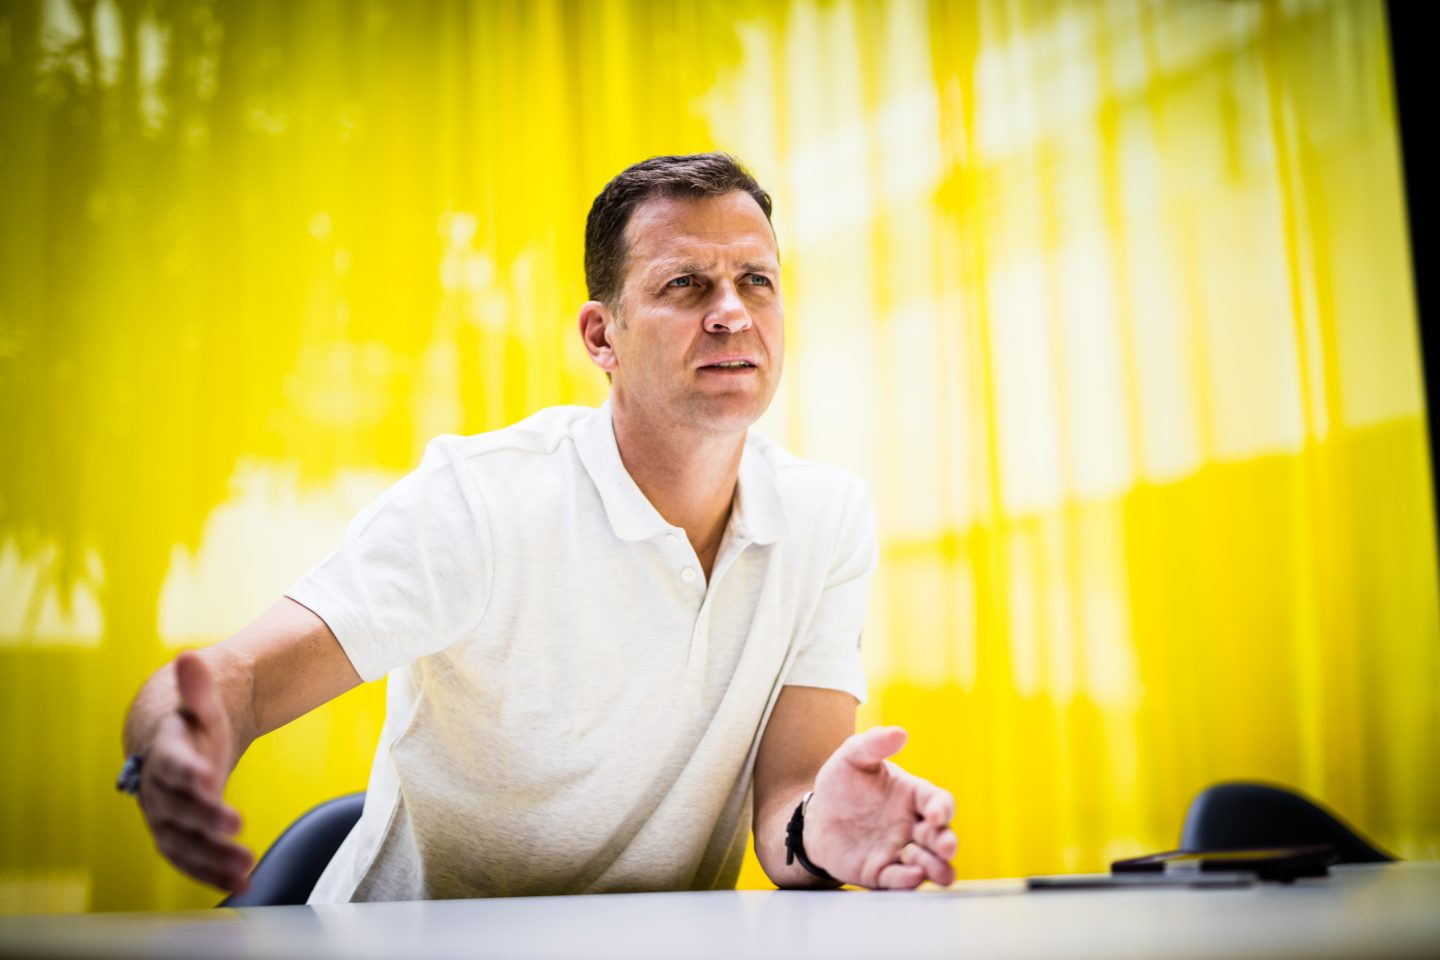 Oliver Bierhoff wearing white poloshirt giving an interview in front of yellow background at adidas for GamePlan A on team culture and the German national team, Oliver Bierhoff_DFB_Interview_adidas_Team Culture